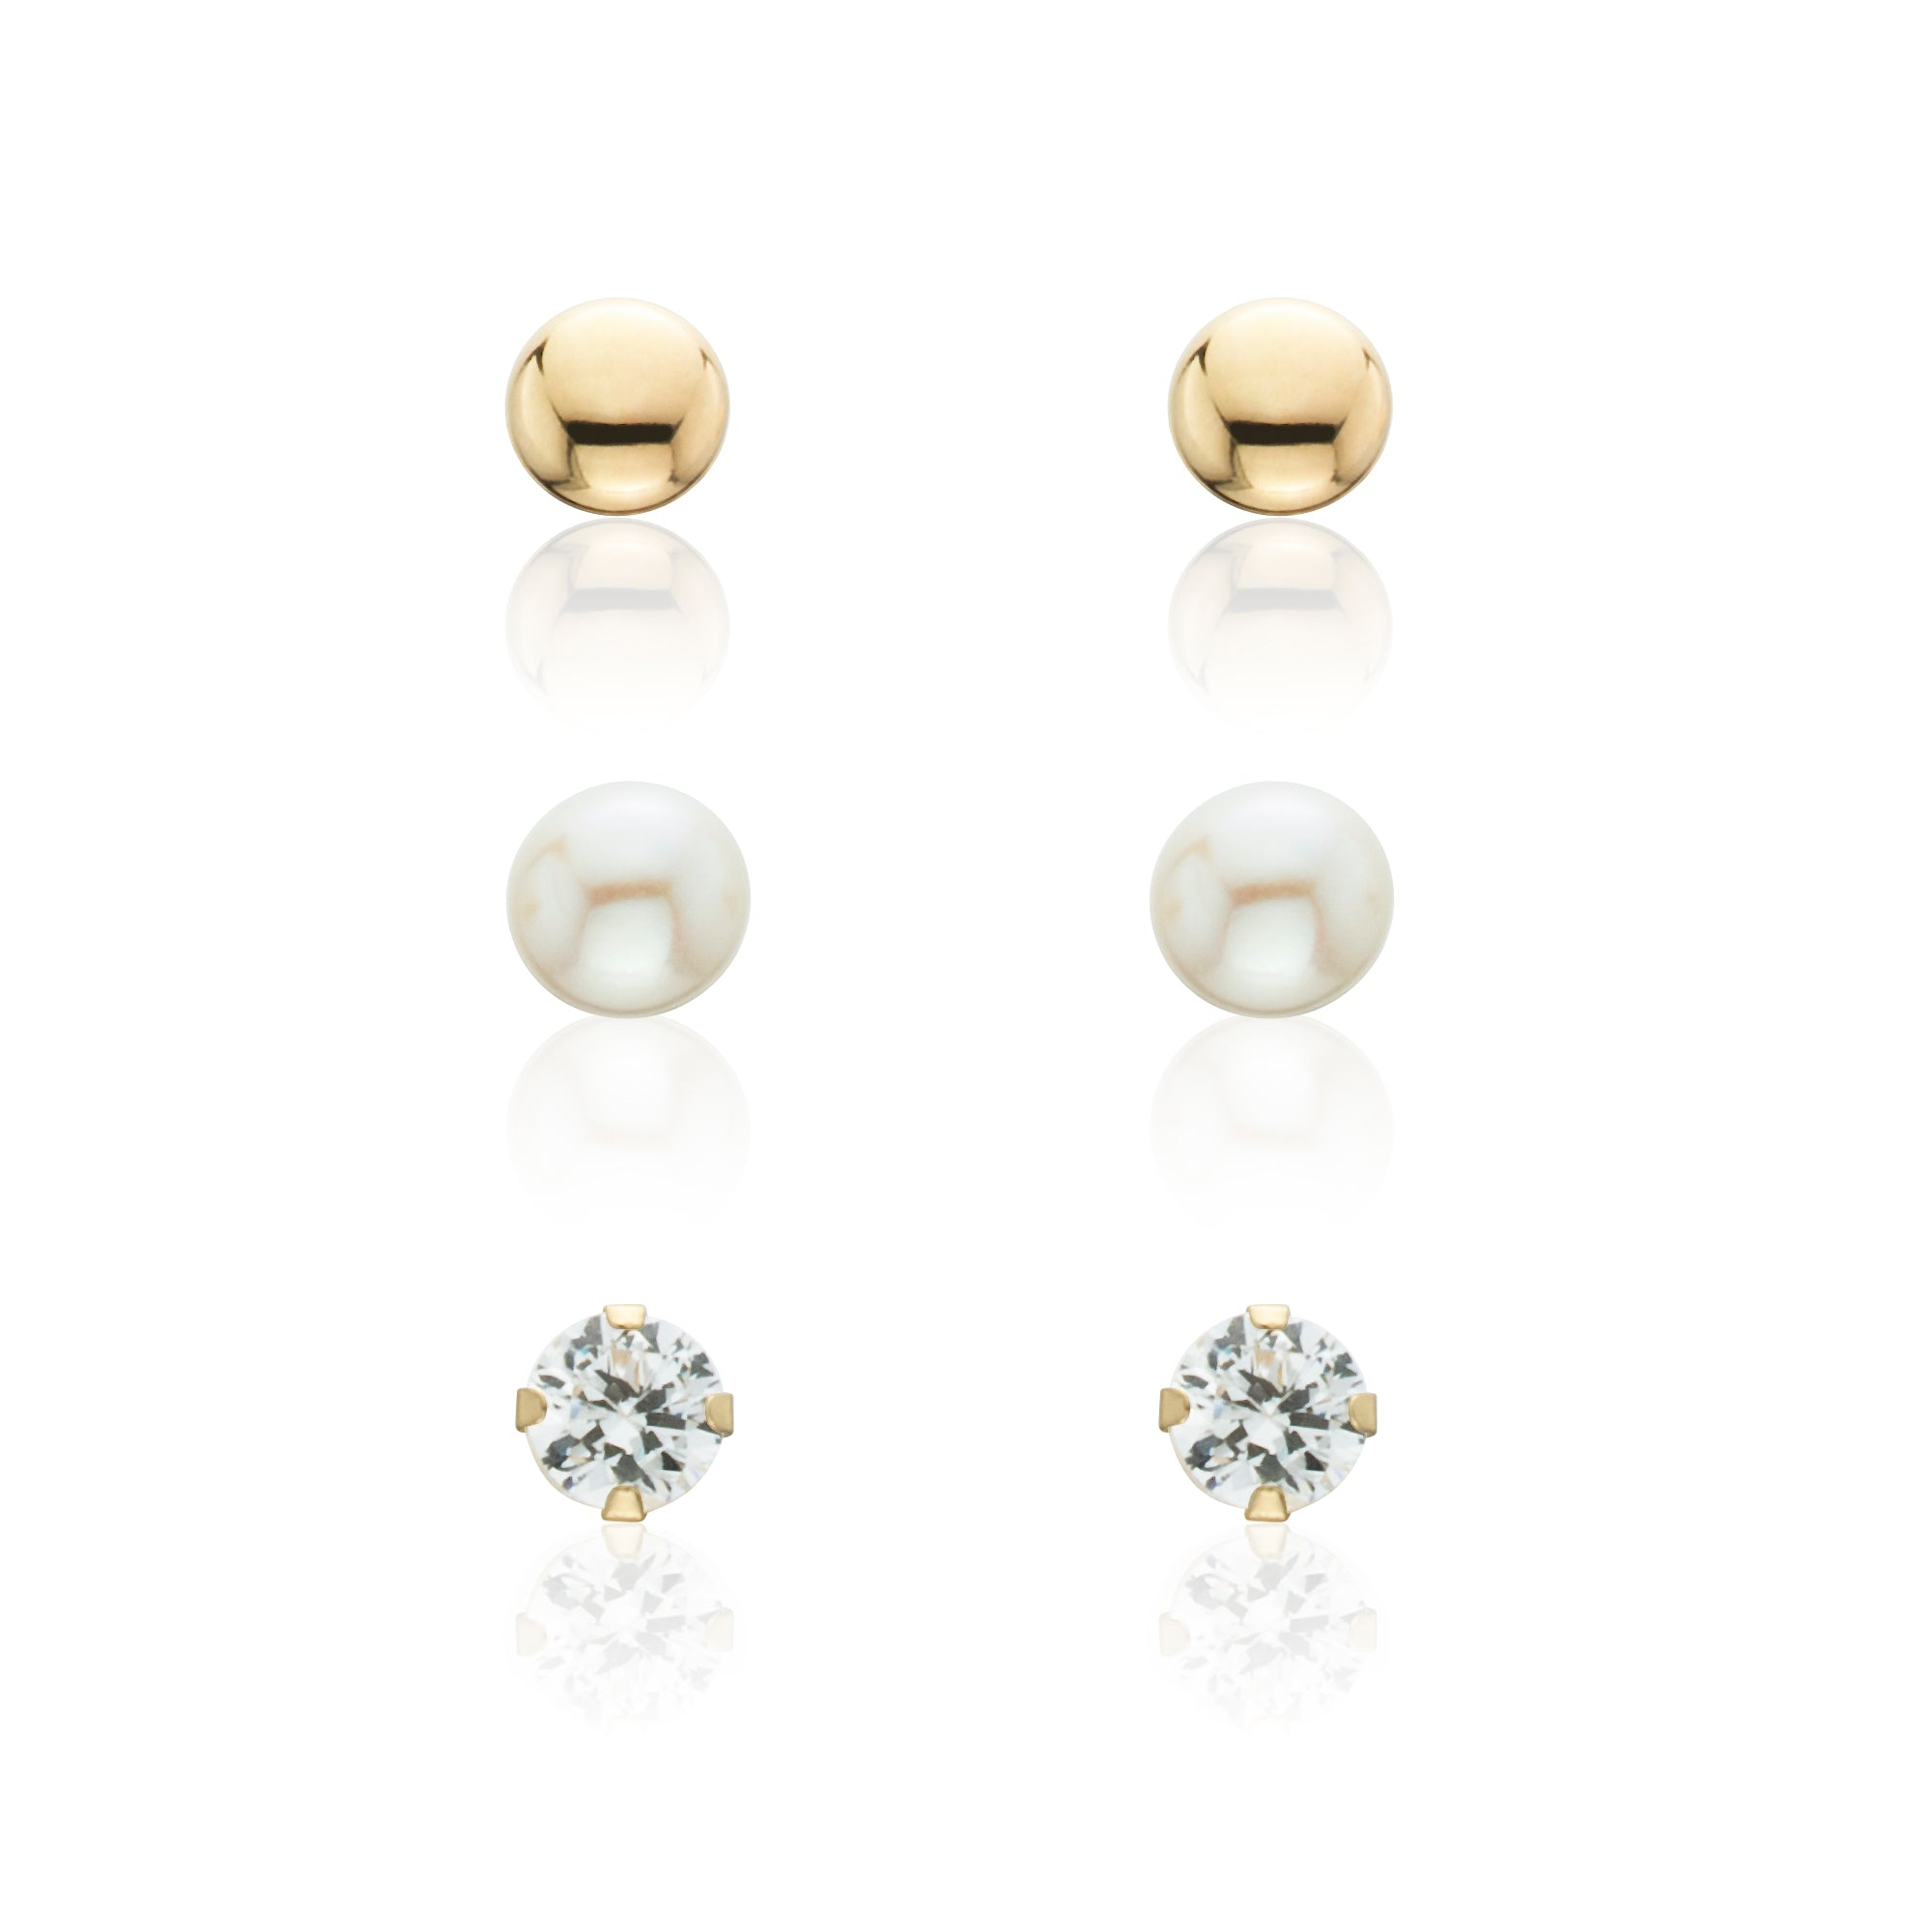 mm for her fullxfull earrings white solitaire stud il jewelry diamond equz present birthday gold carat women listing